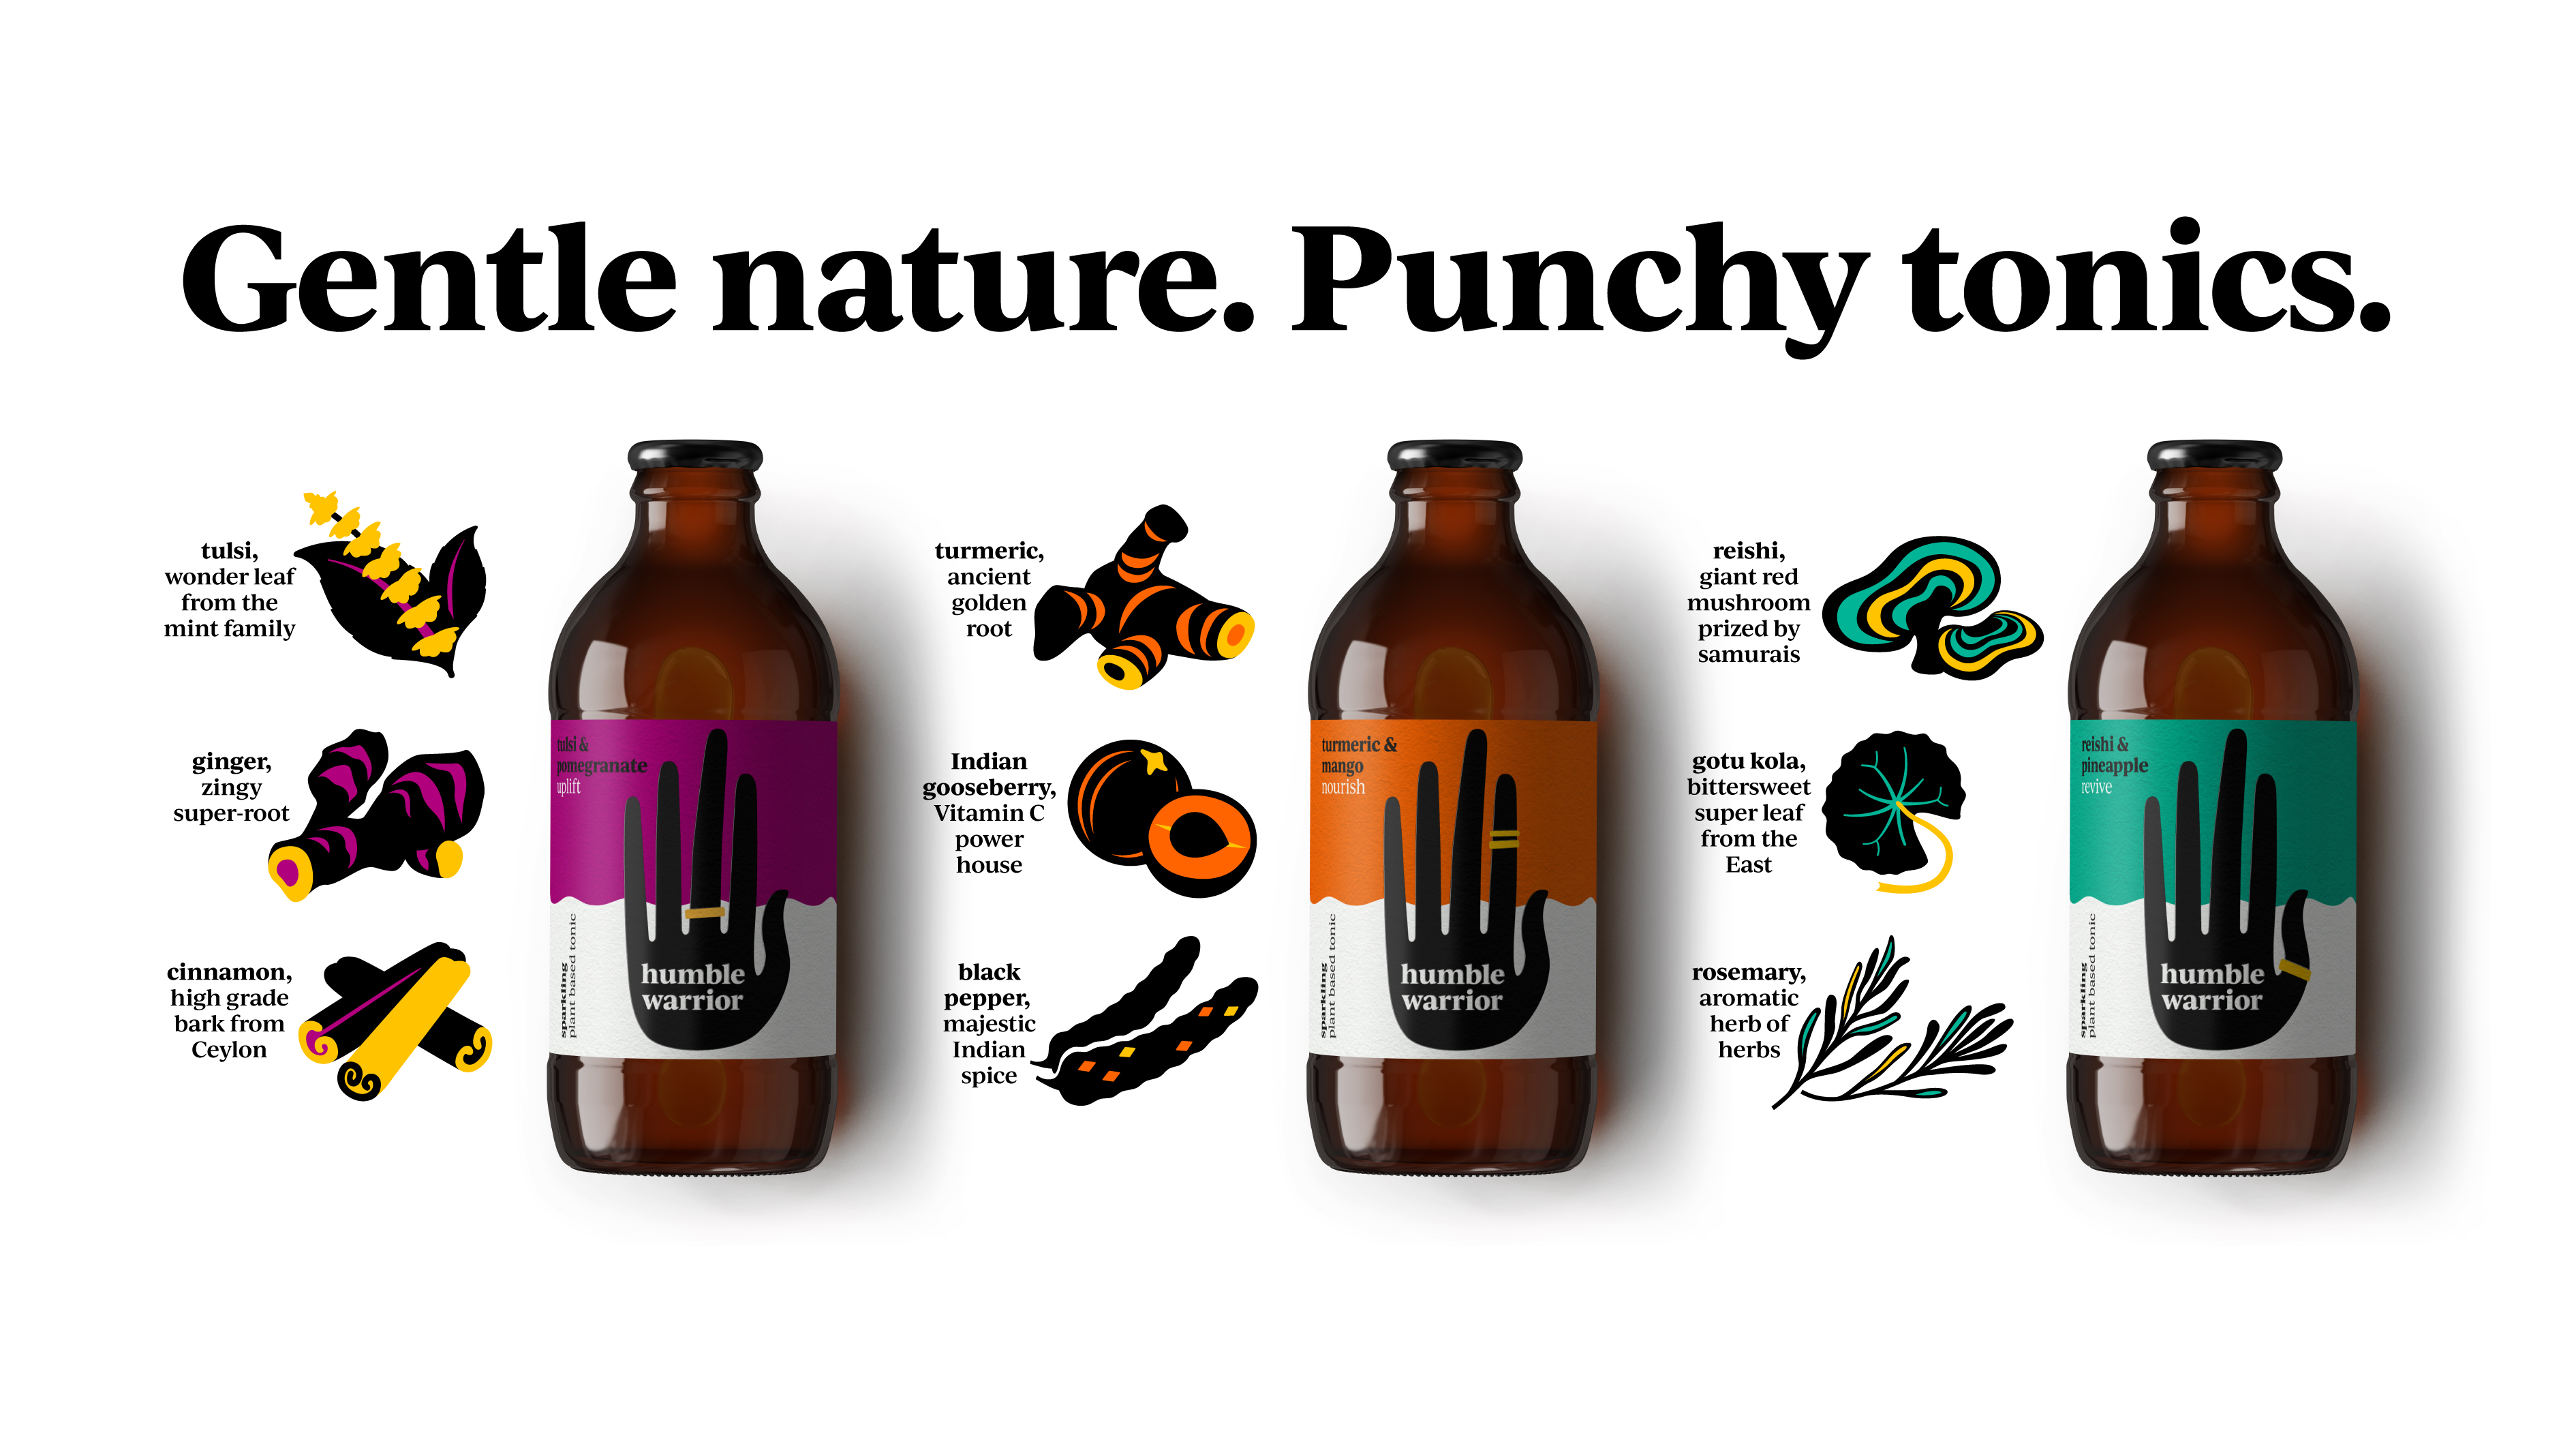 Humble Warrior's Redesign Was a Hands-On Approach | Dieline